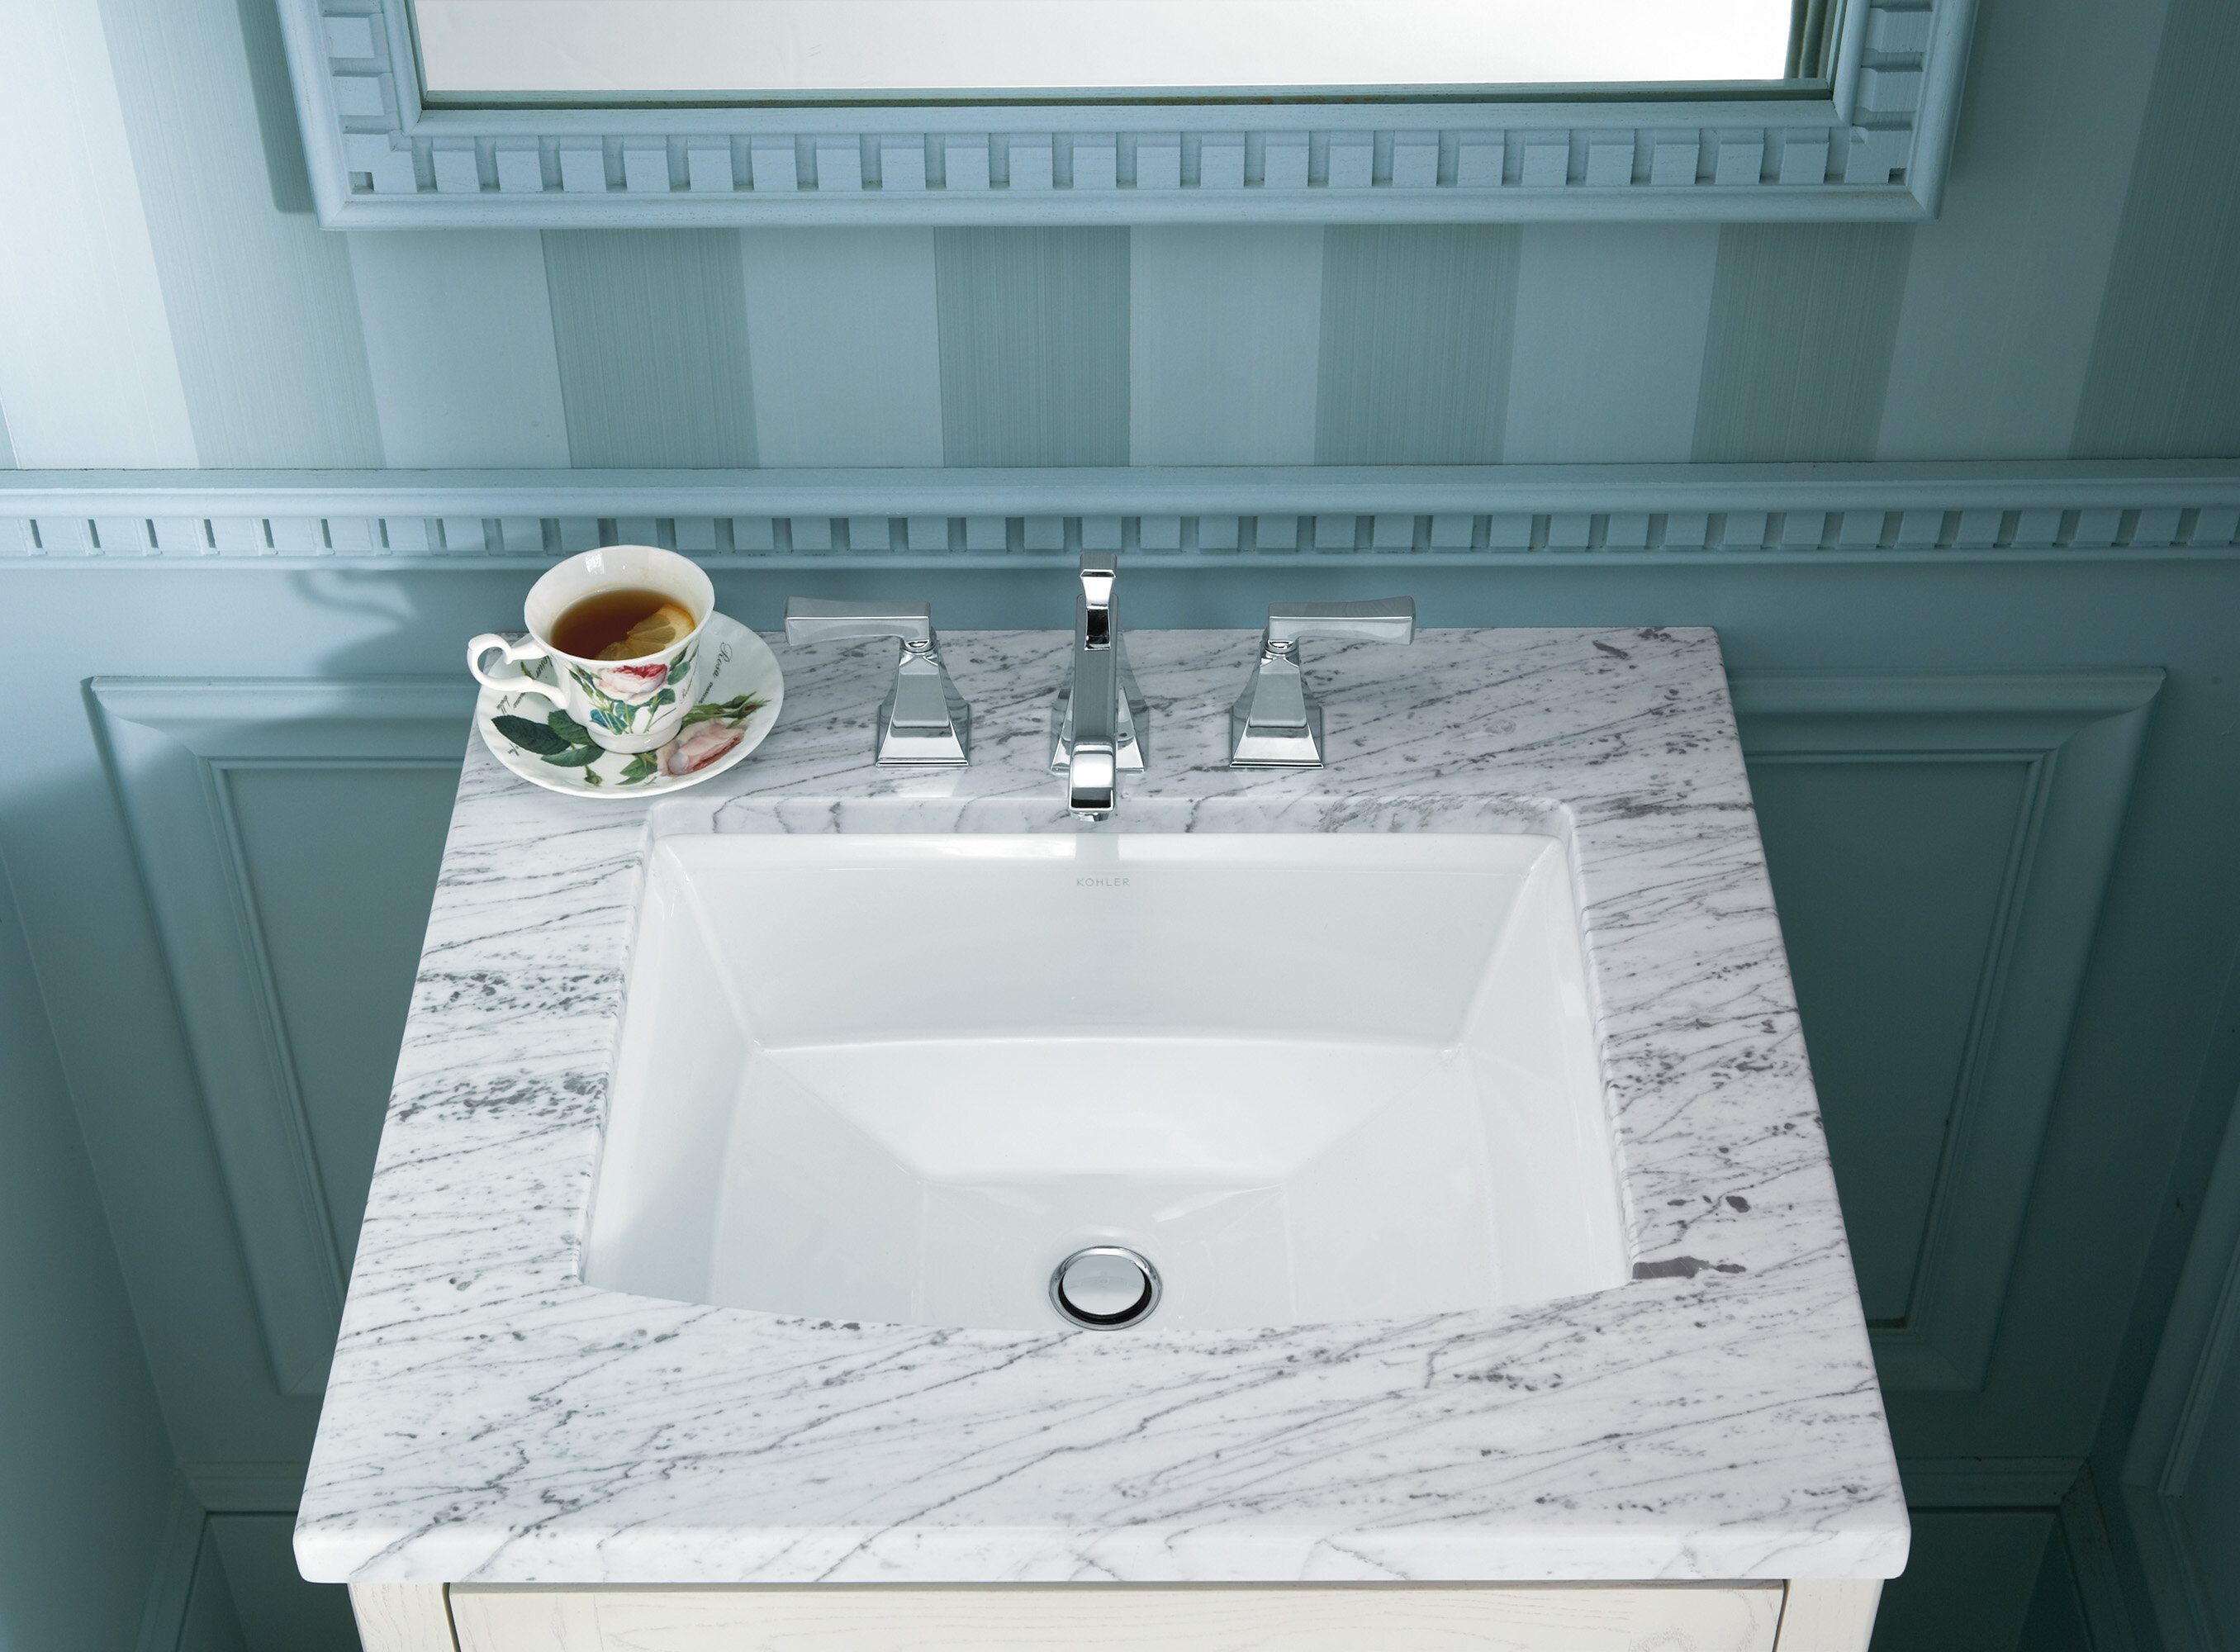 K-2355-0,33,47 Kohler Archer Ceramic Rectangular Undermount Bathroom ...